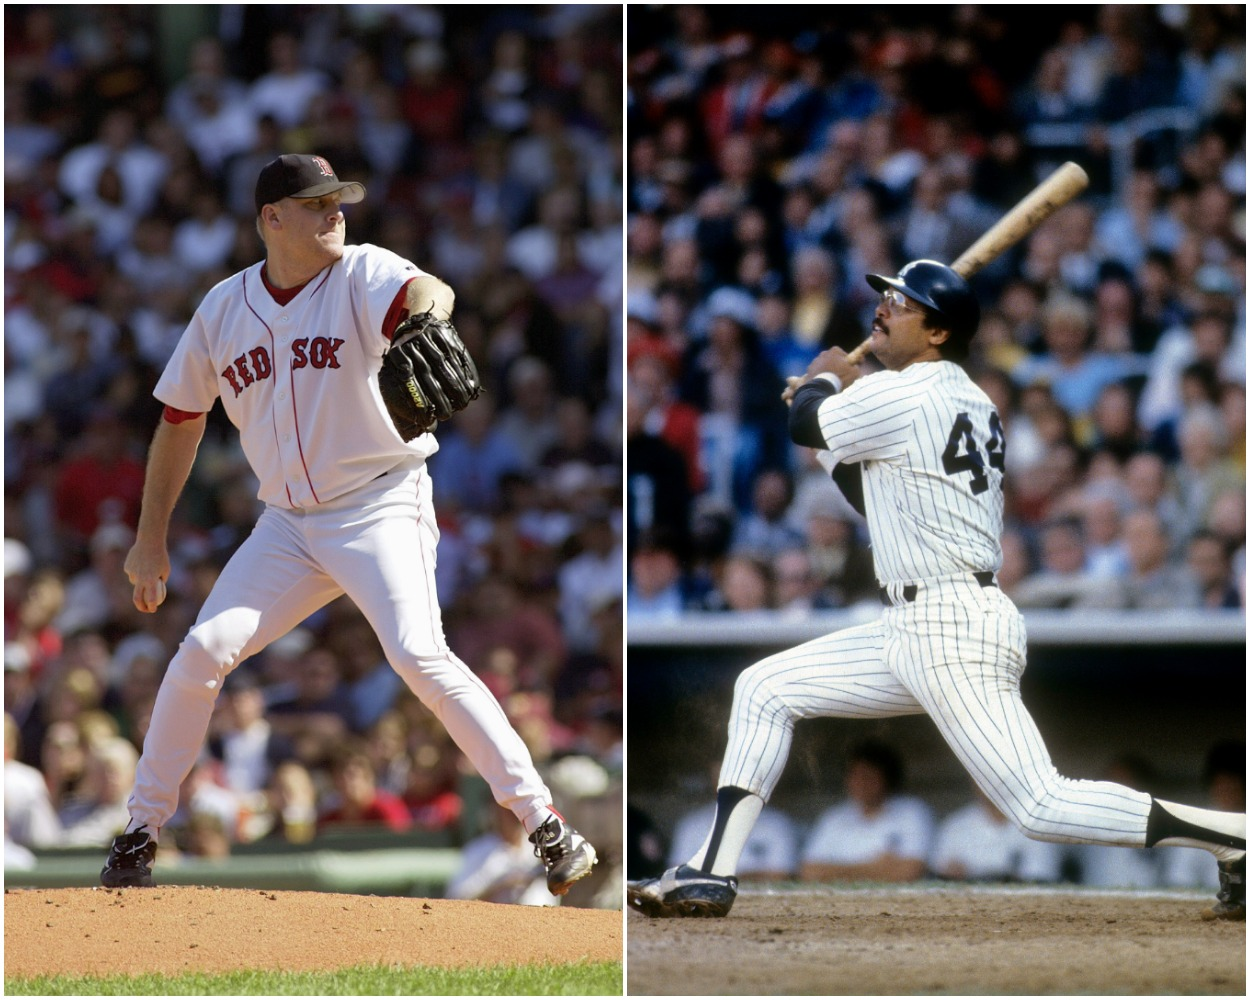 Yankees Legend Reggie Jackson Rips Curt Schilling for His Previous Remarks and Calls Him a Liar